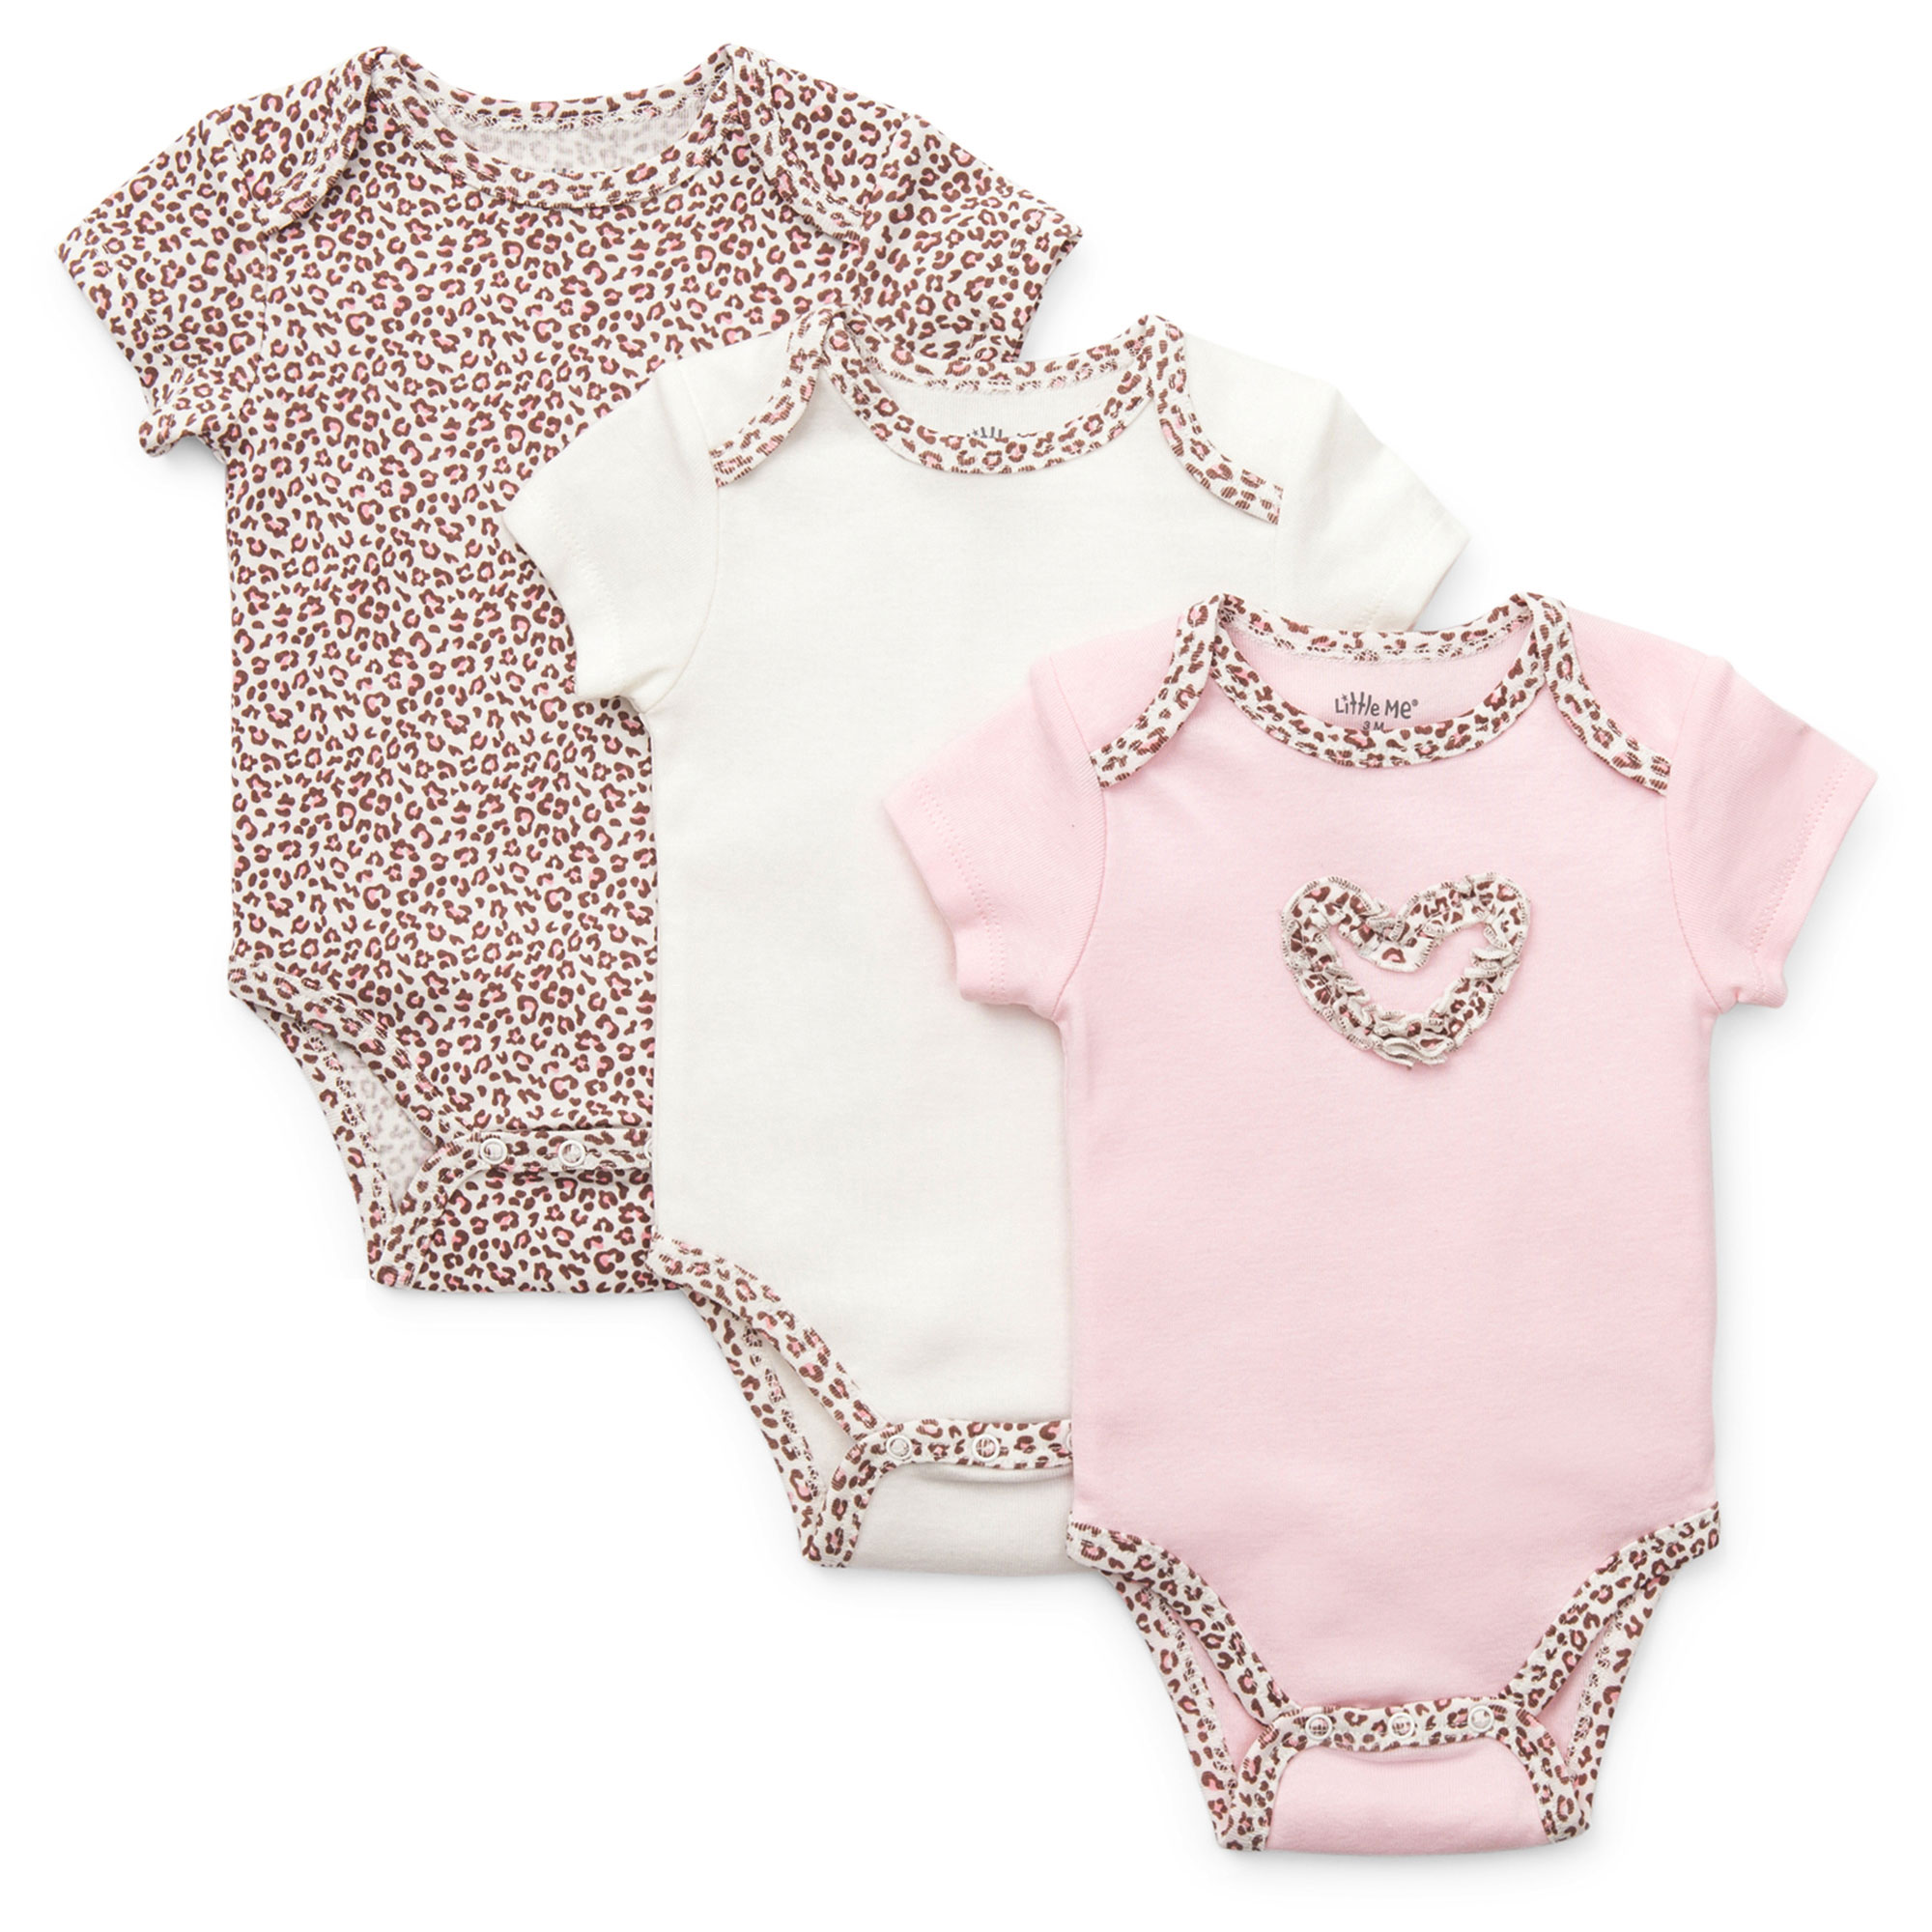 Little Me Baby Leopard Animal Print 3 Pack of Short Sleeve Baby Bodysuit Creepers For Girls - Pink - 9 Months